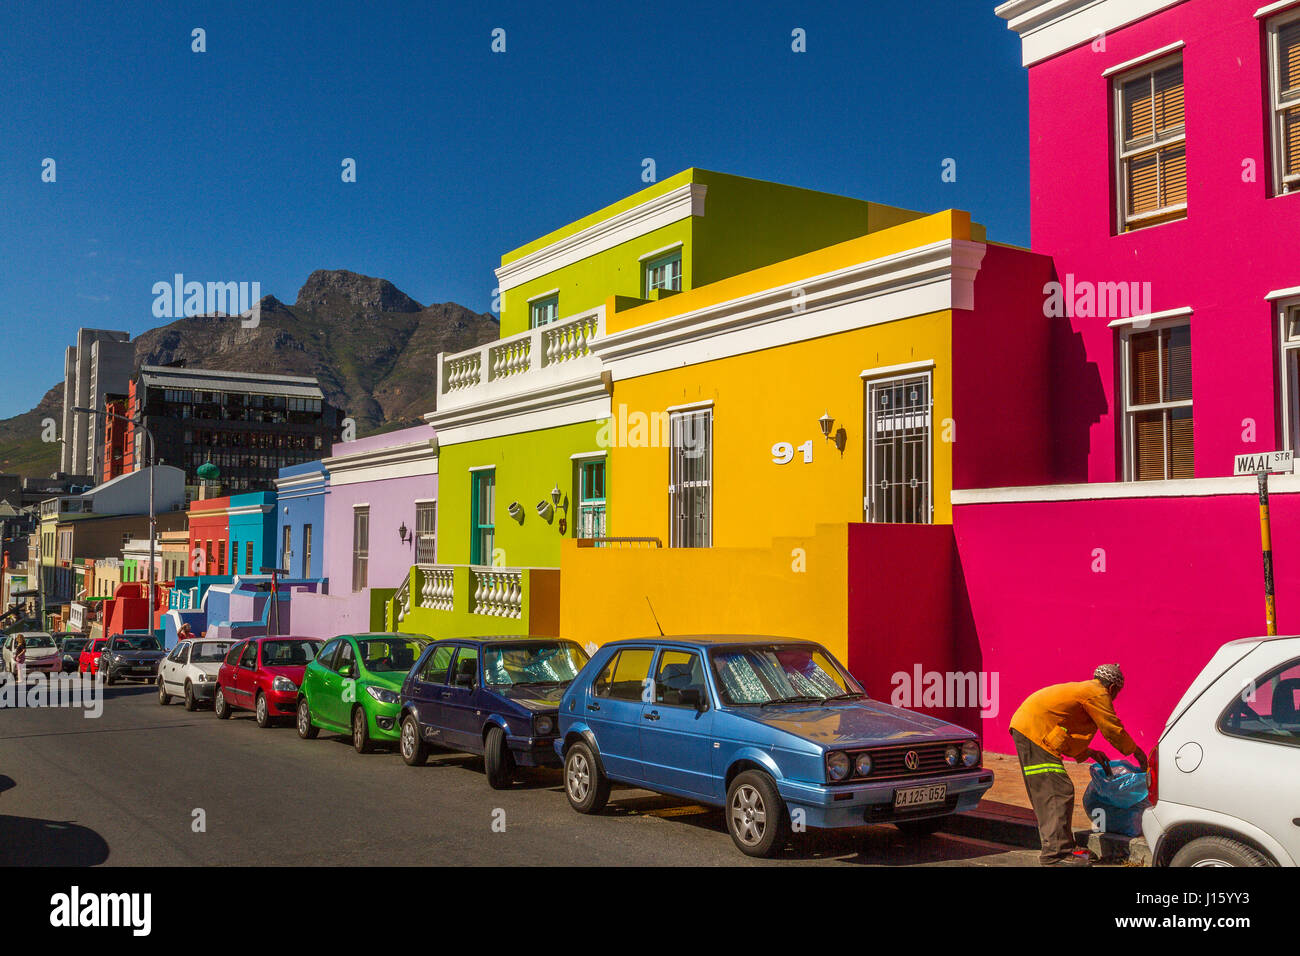 Brightly painted houses in the Bo - Kaap or Malay Quarter area of Cape Town,located on the Slopes of Signal Hill - Stock Image